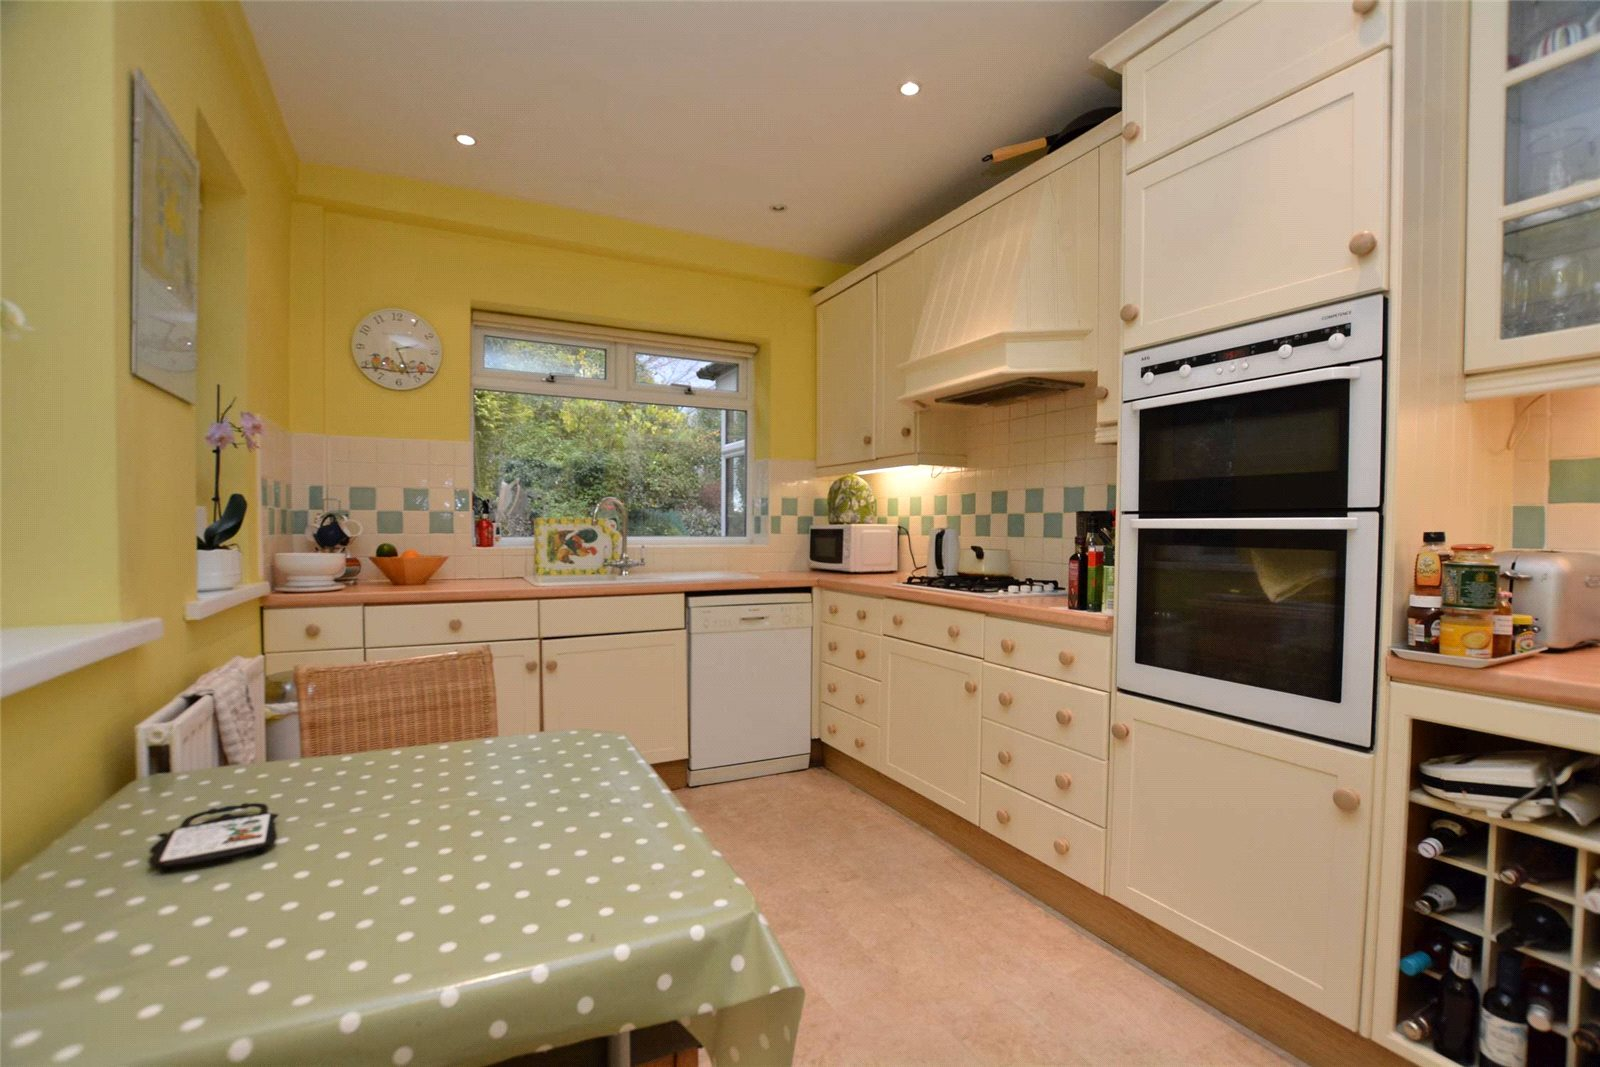 Property for sale in Headingley, interior modern fitted farmhouse kitchen